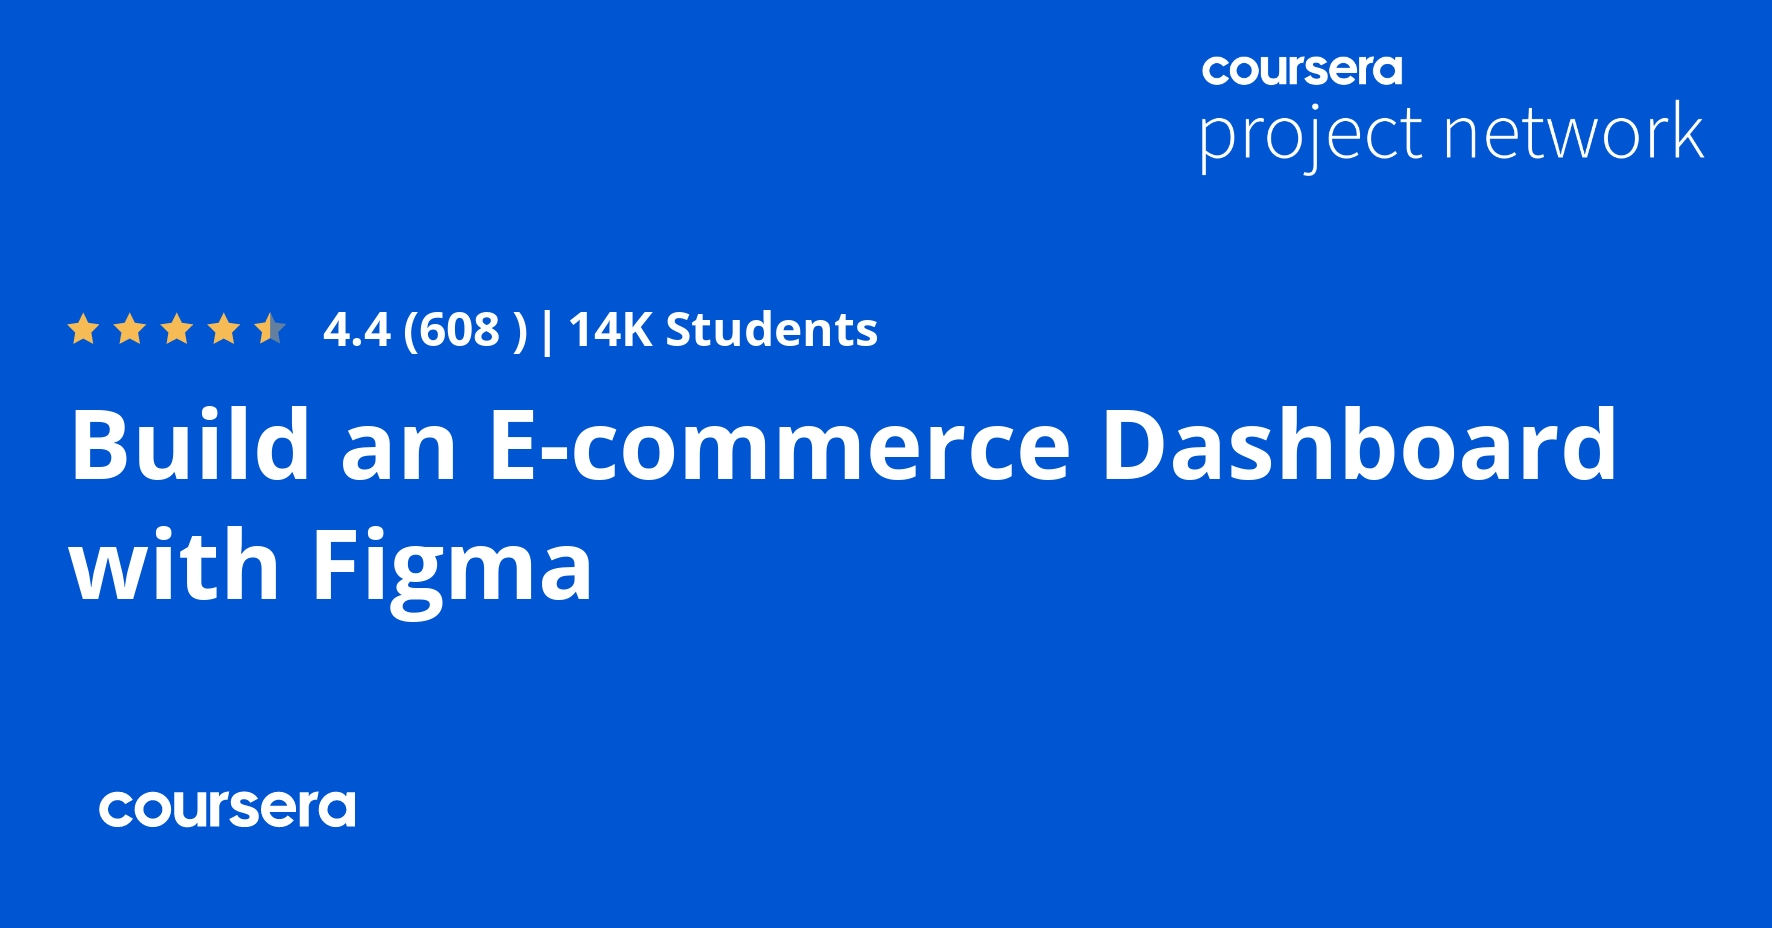 Build an E-commerce Dashboard with Figma